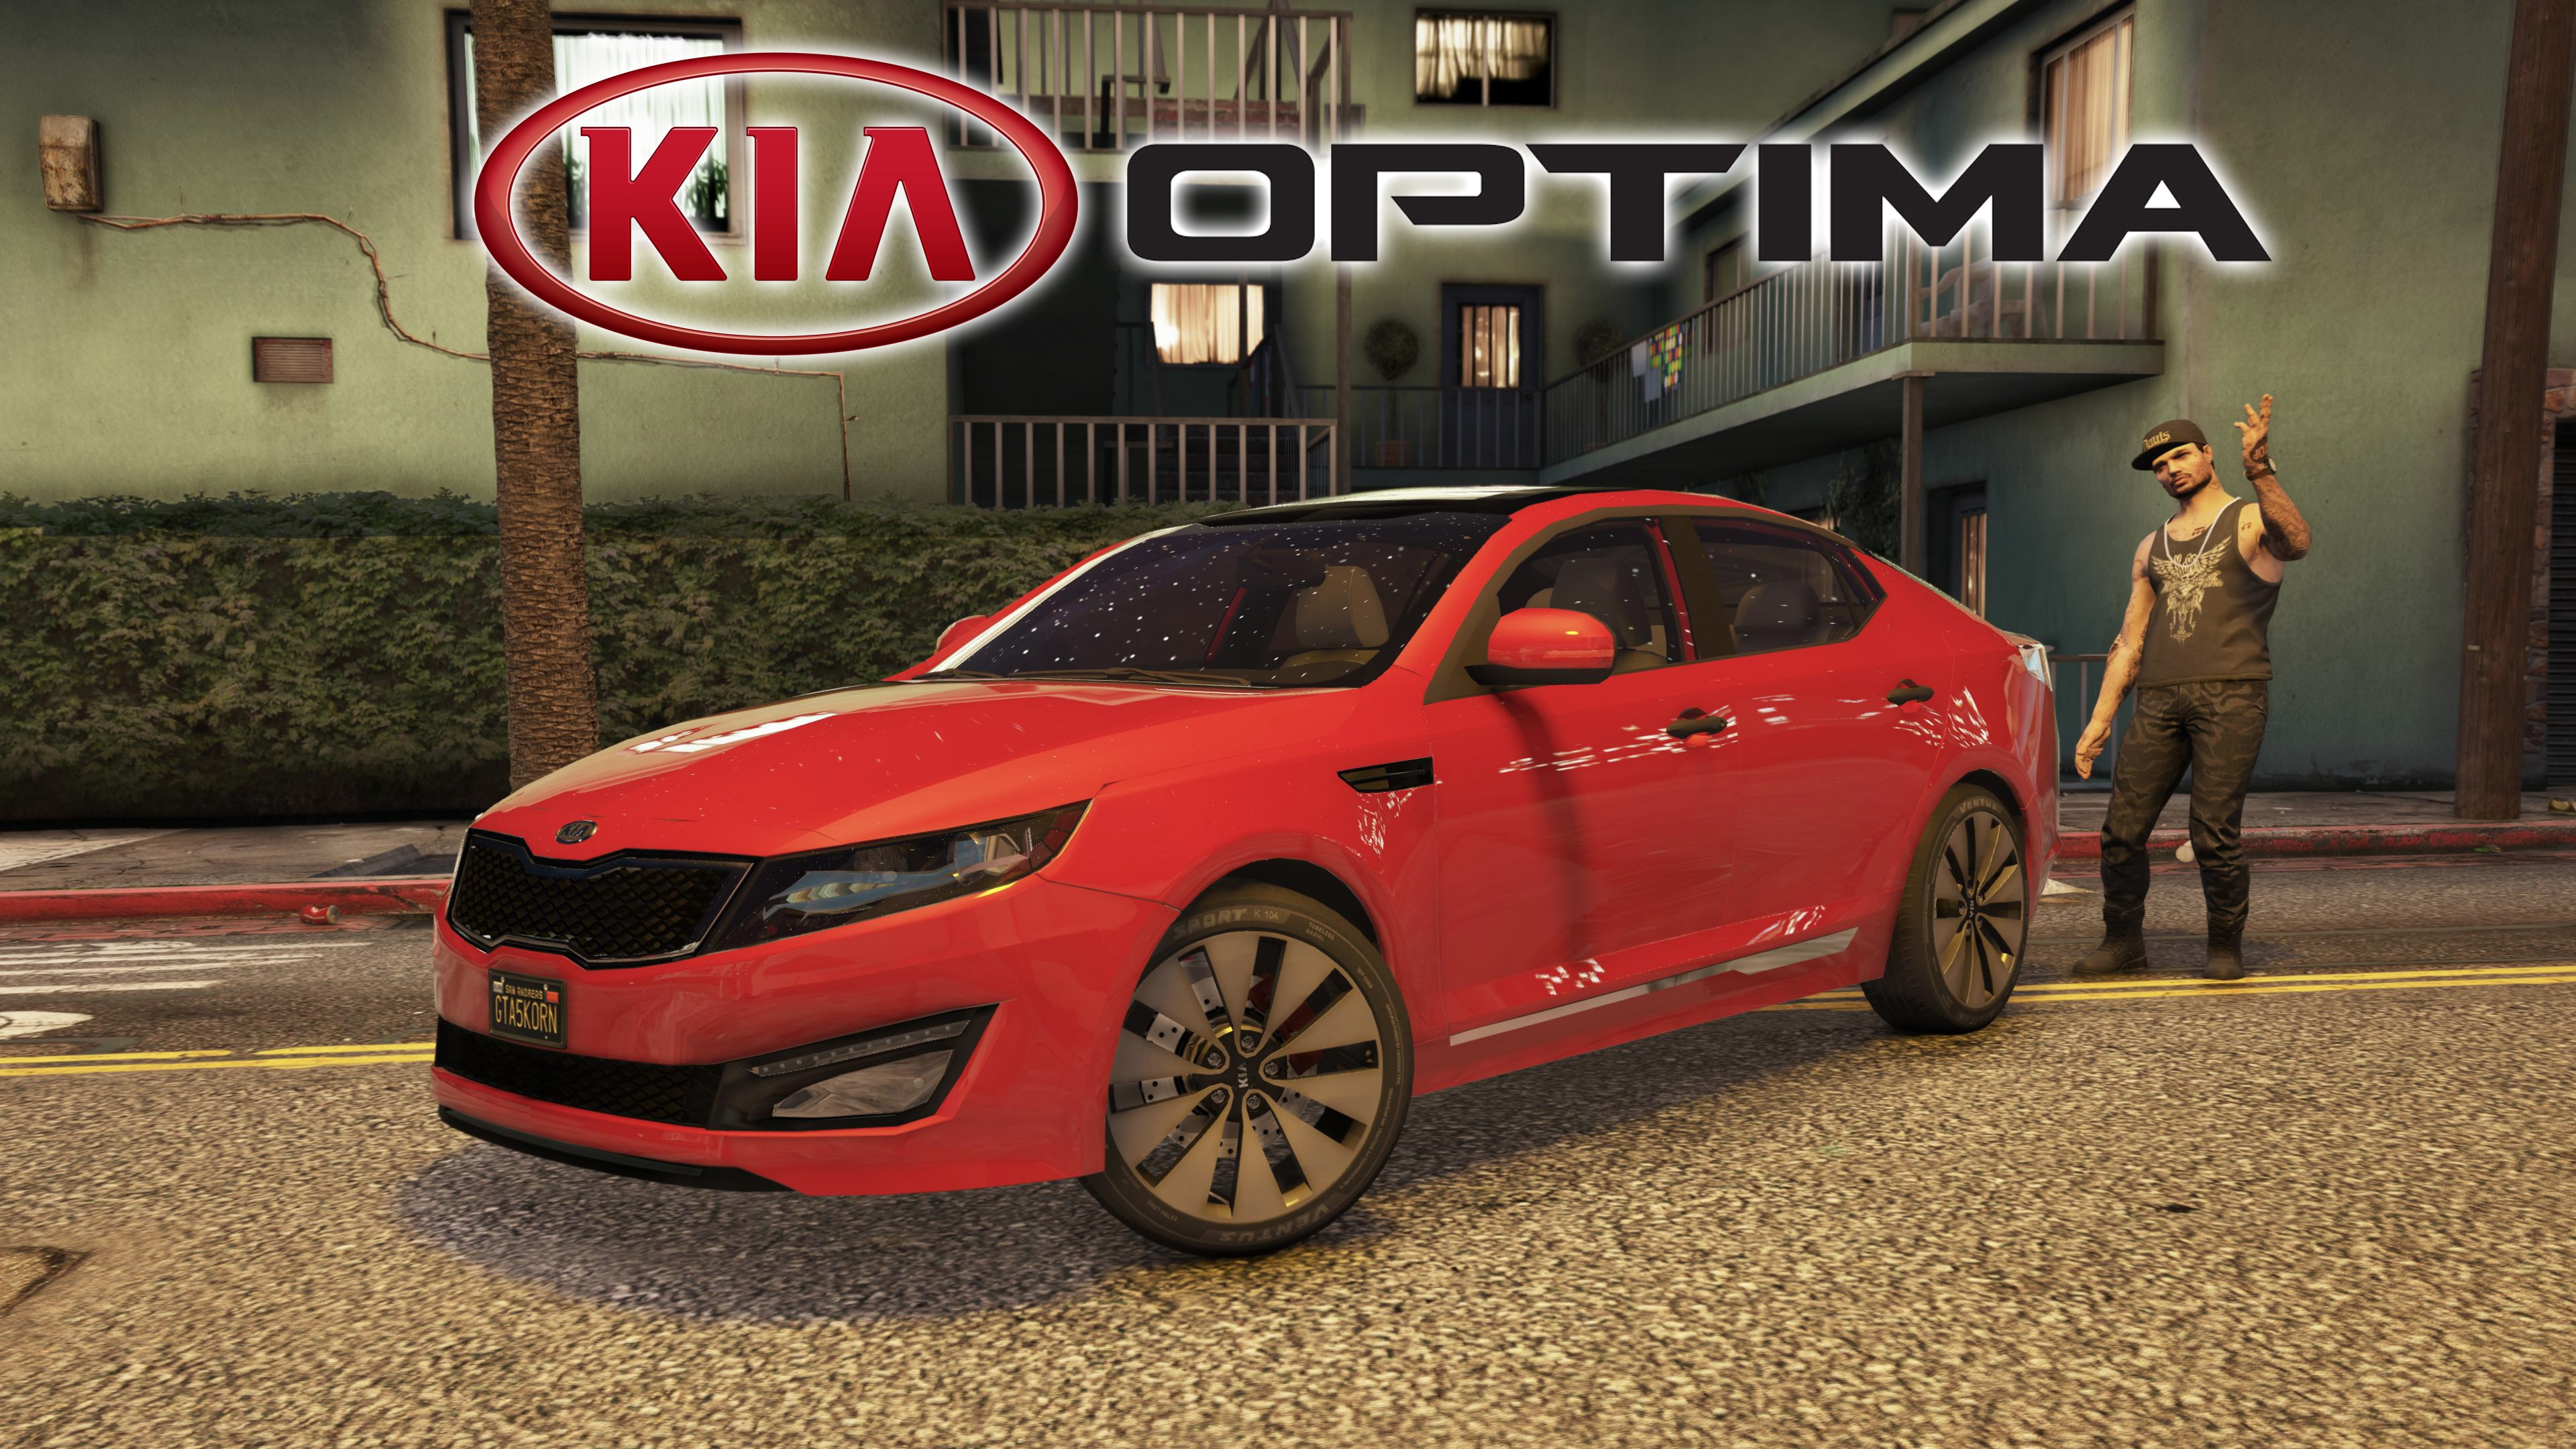 cars aerodynamic h updated hybrid more optima tweaks kia and news